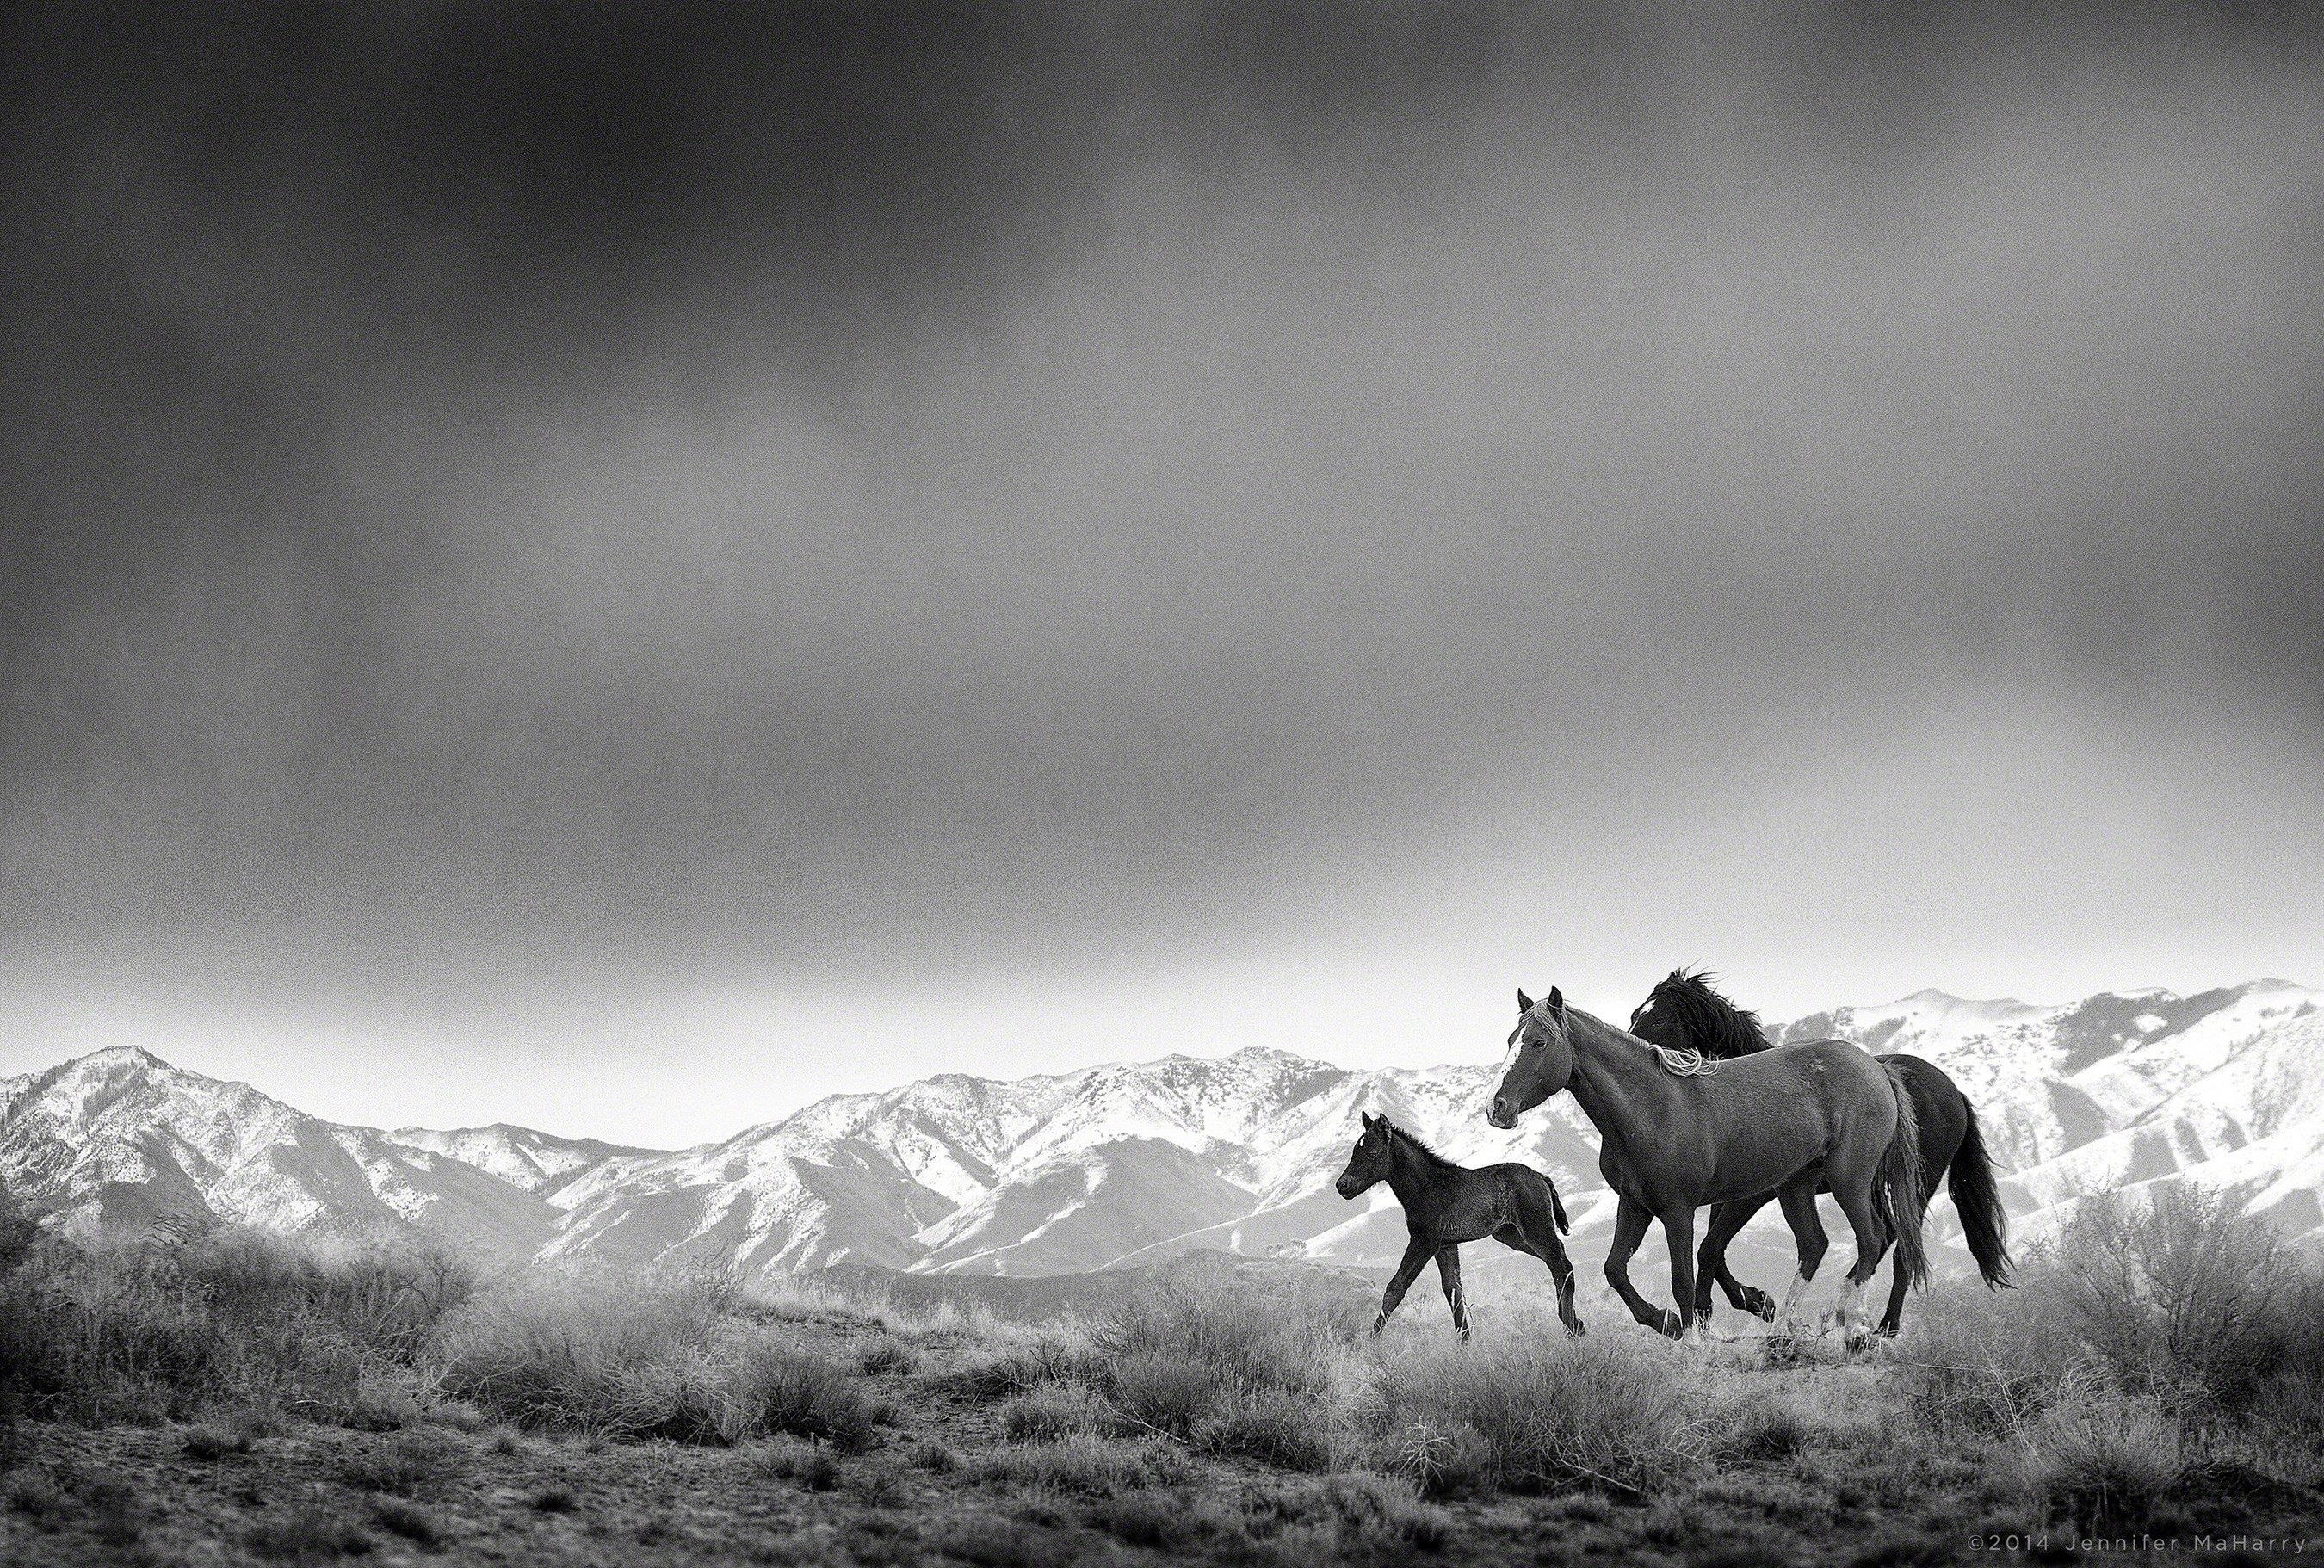 G2 Gallery Presents Wild Horses Exhibit, Thru 9/14